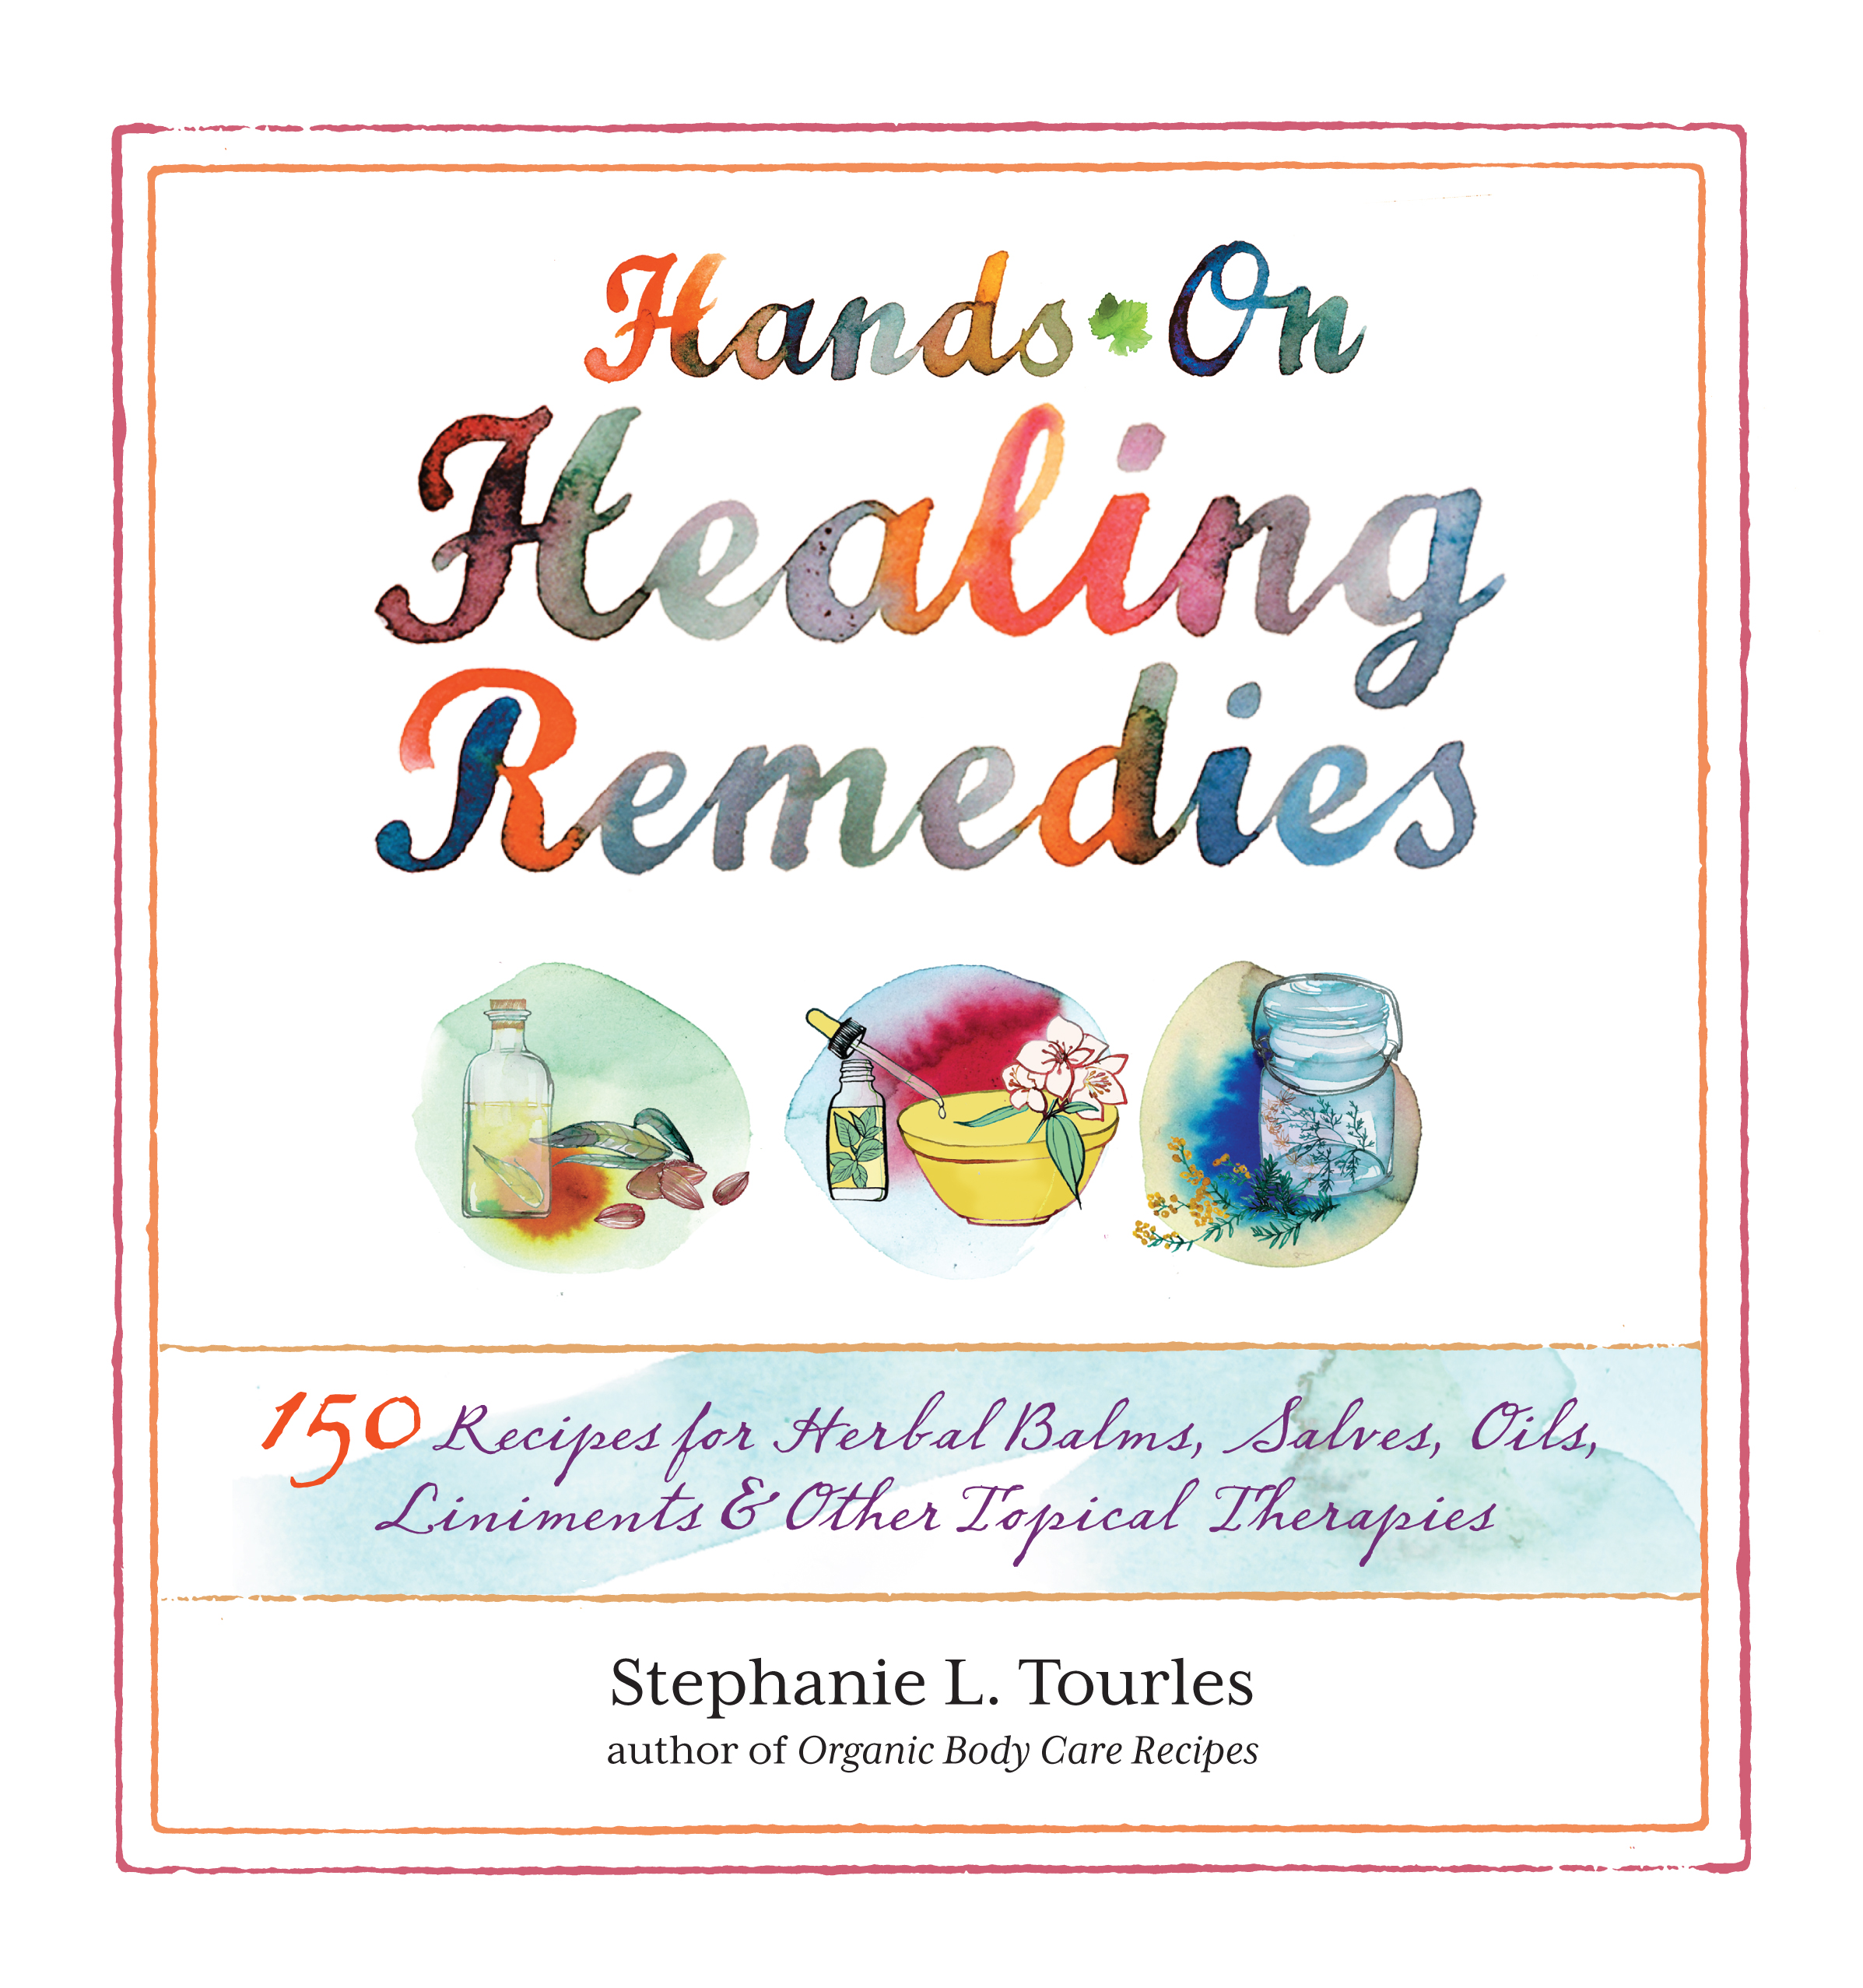 Hands-On Healing Remedies 150 Recipes for Herbal Balms, Salves, Oils, Liniments & Other Topical Therapies - Stephanie L. Tourles